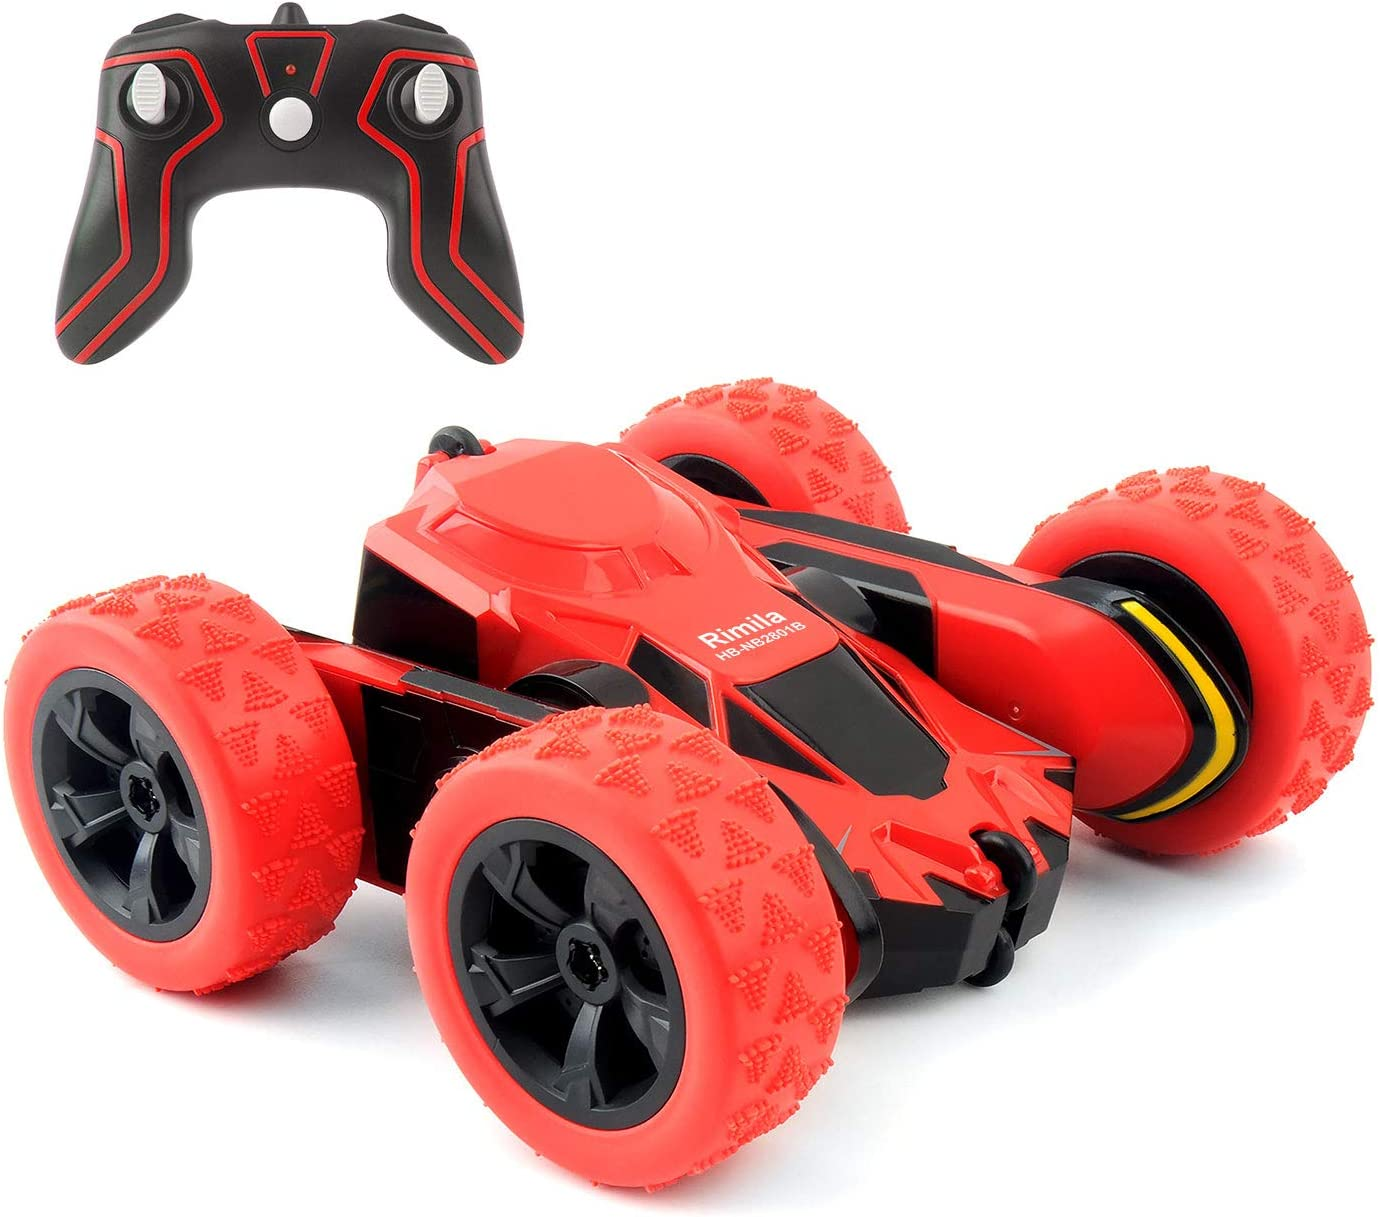 Details about  /Wall Climbing Remote Control RC Car Rotating LED Stunt Racing Car Kids Toys Gift